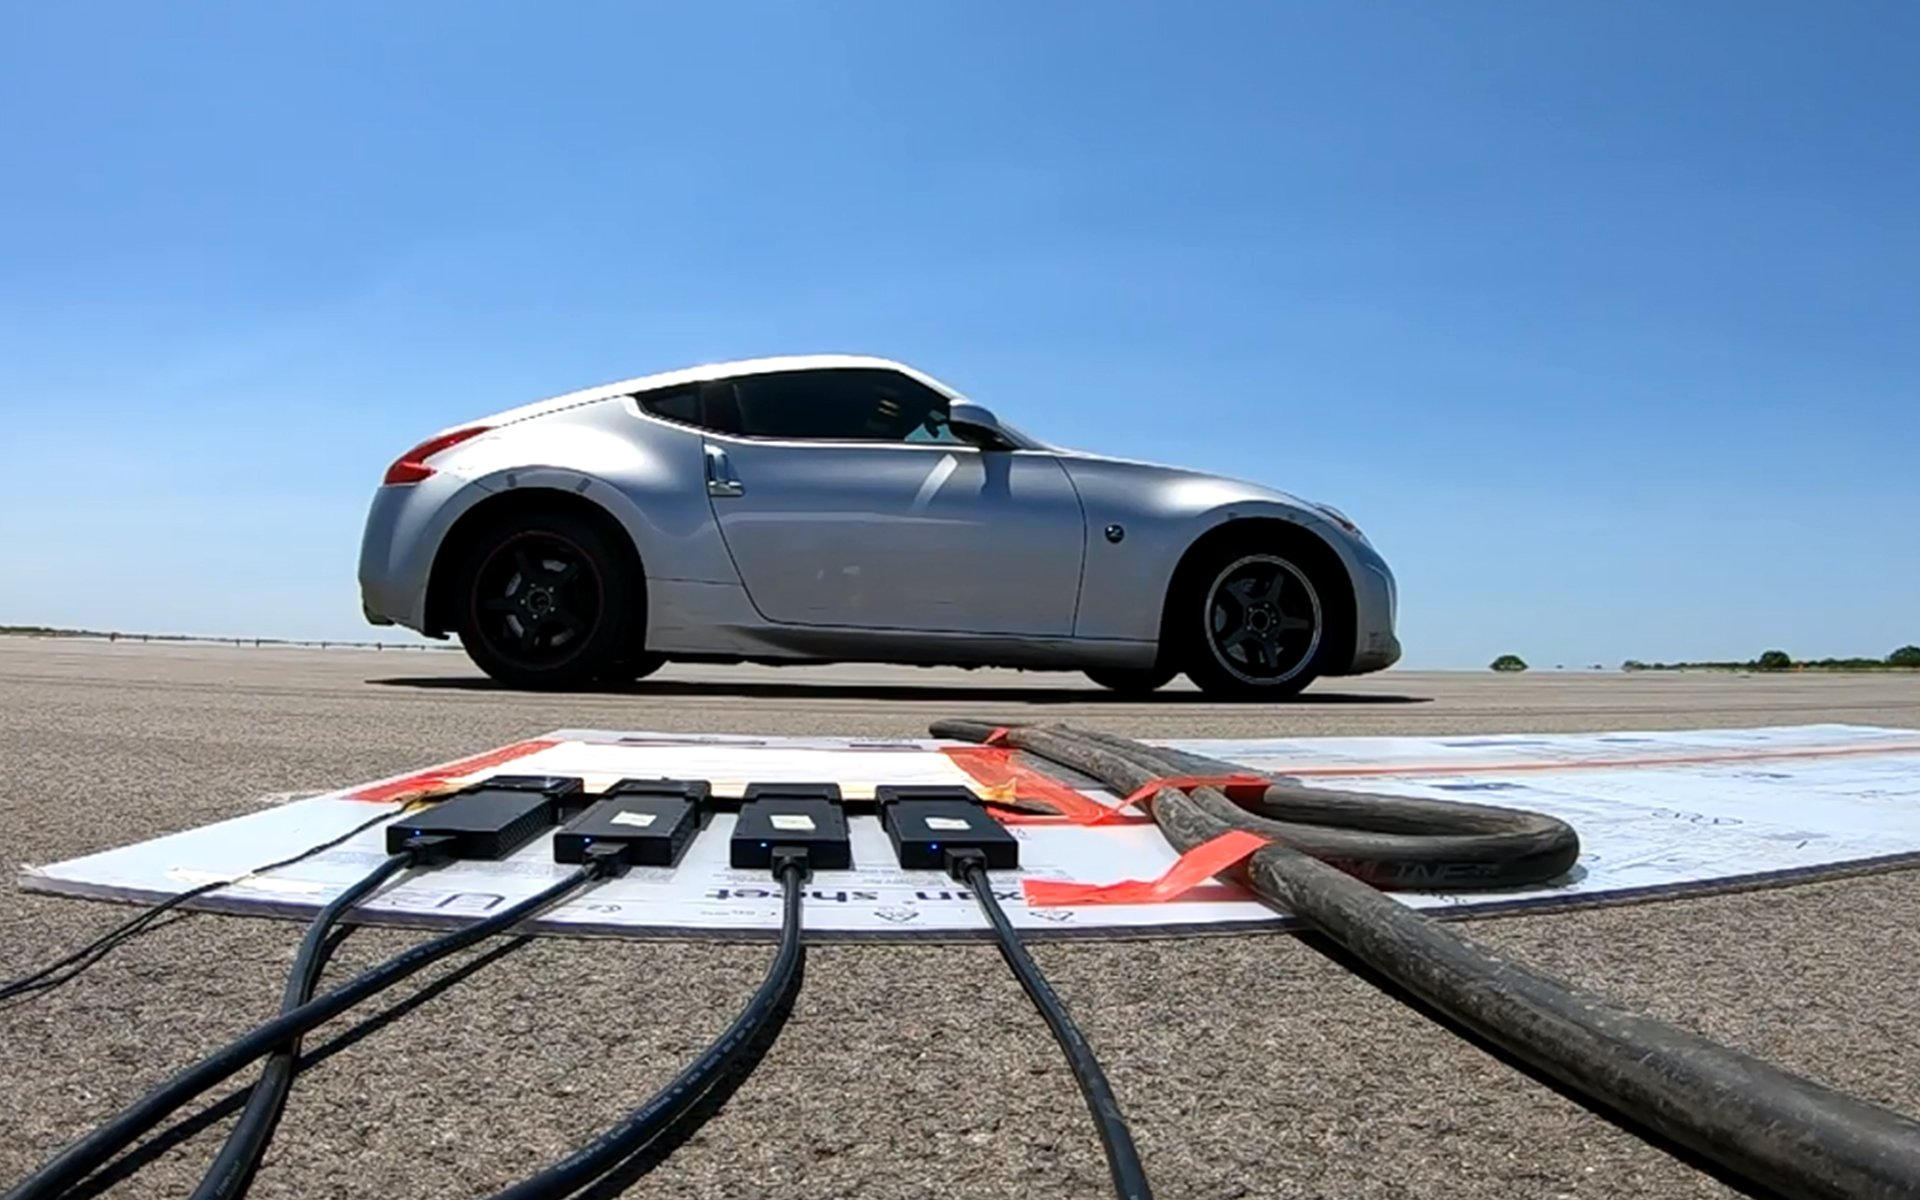 Optimizing Tire Design: Dynamic Tire Footprint Testing at Any Speed